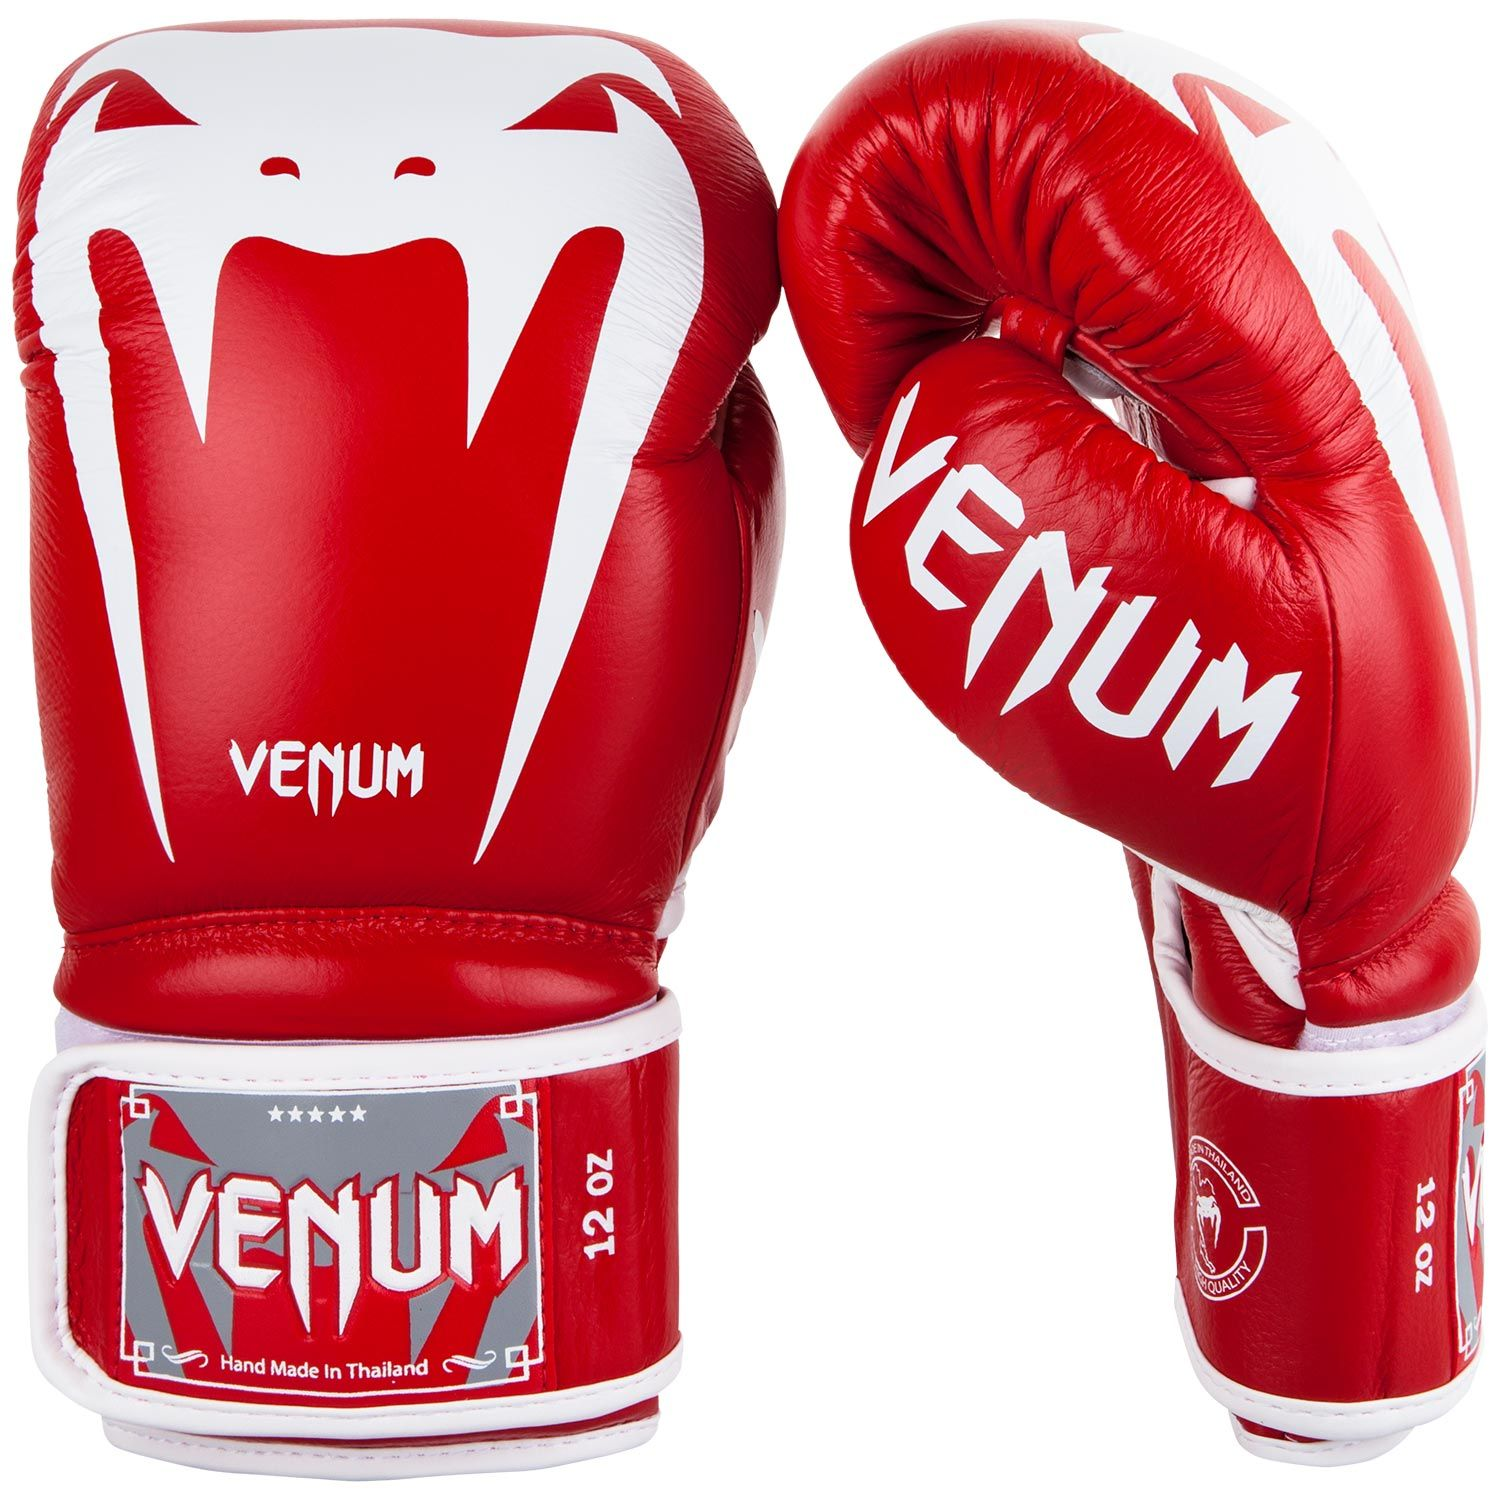 Venum Giant 3.0 Boxing Gloves - Nappa Leather - Red